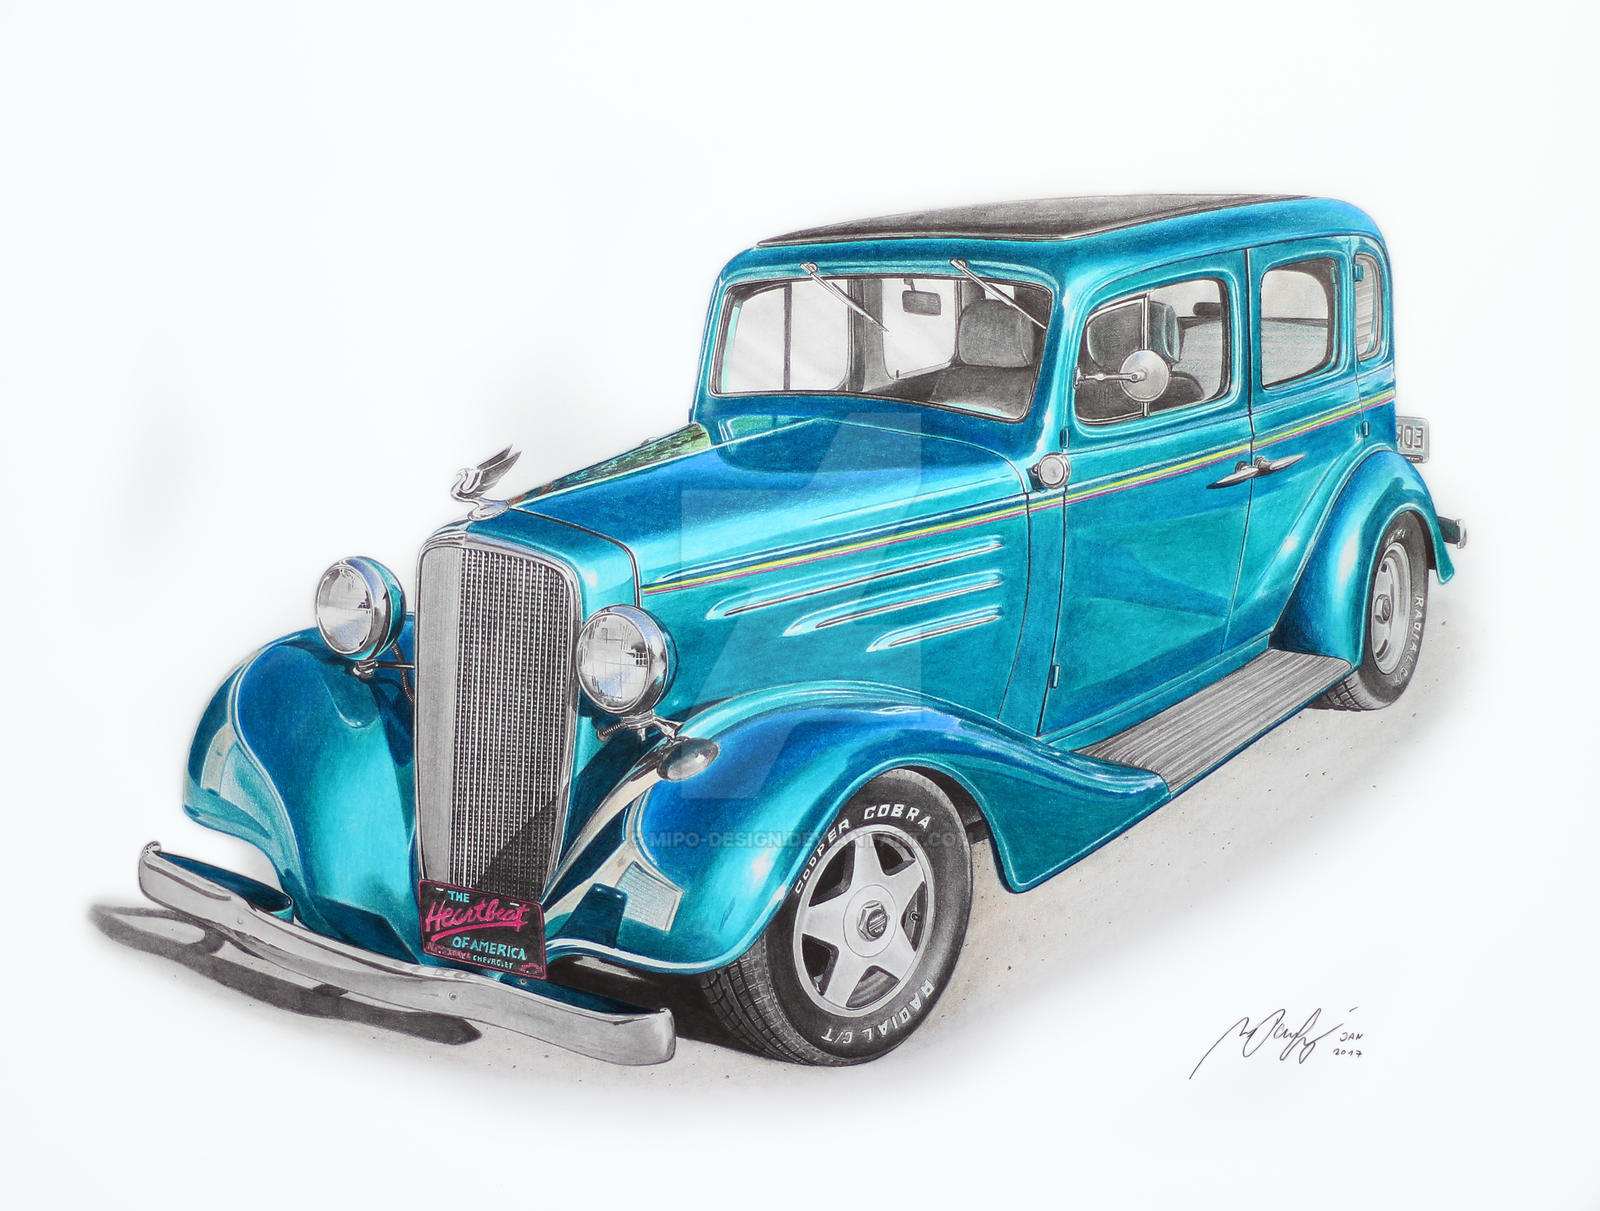 chevrolet_34_by_mipo_design-dauybda.jpg